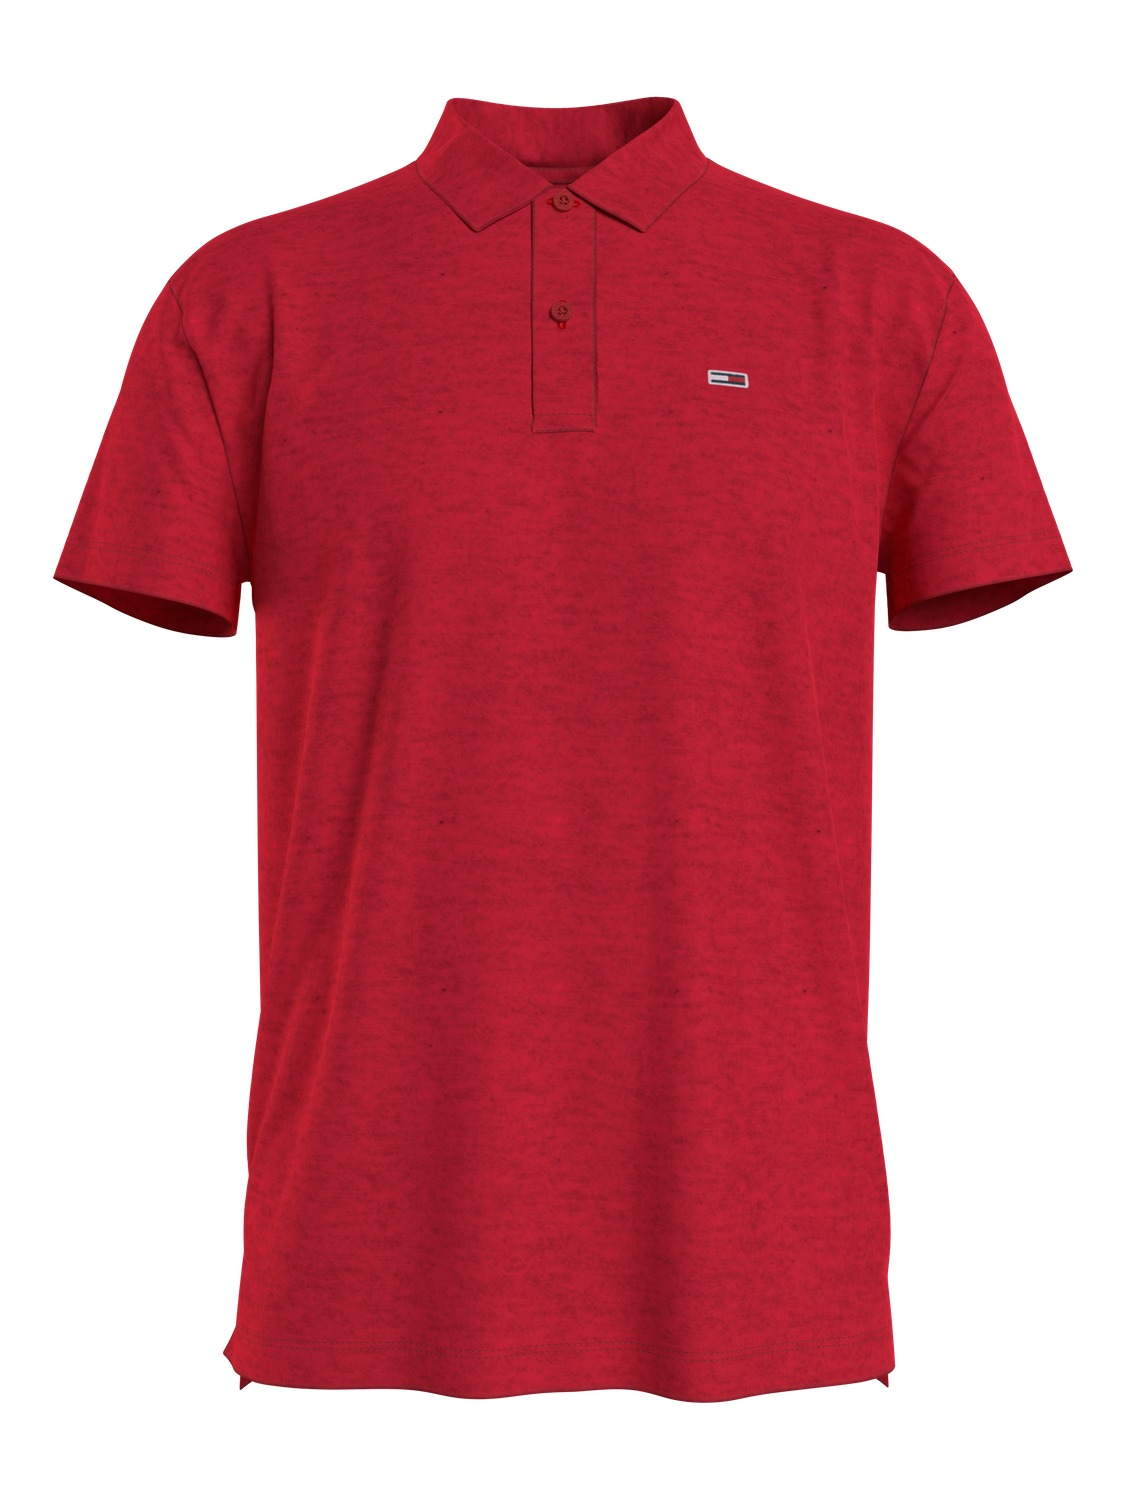 TJM - Jersey polo red | Gate36 Hobro